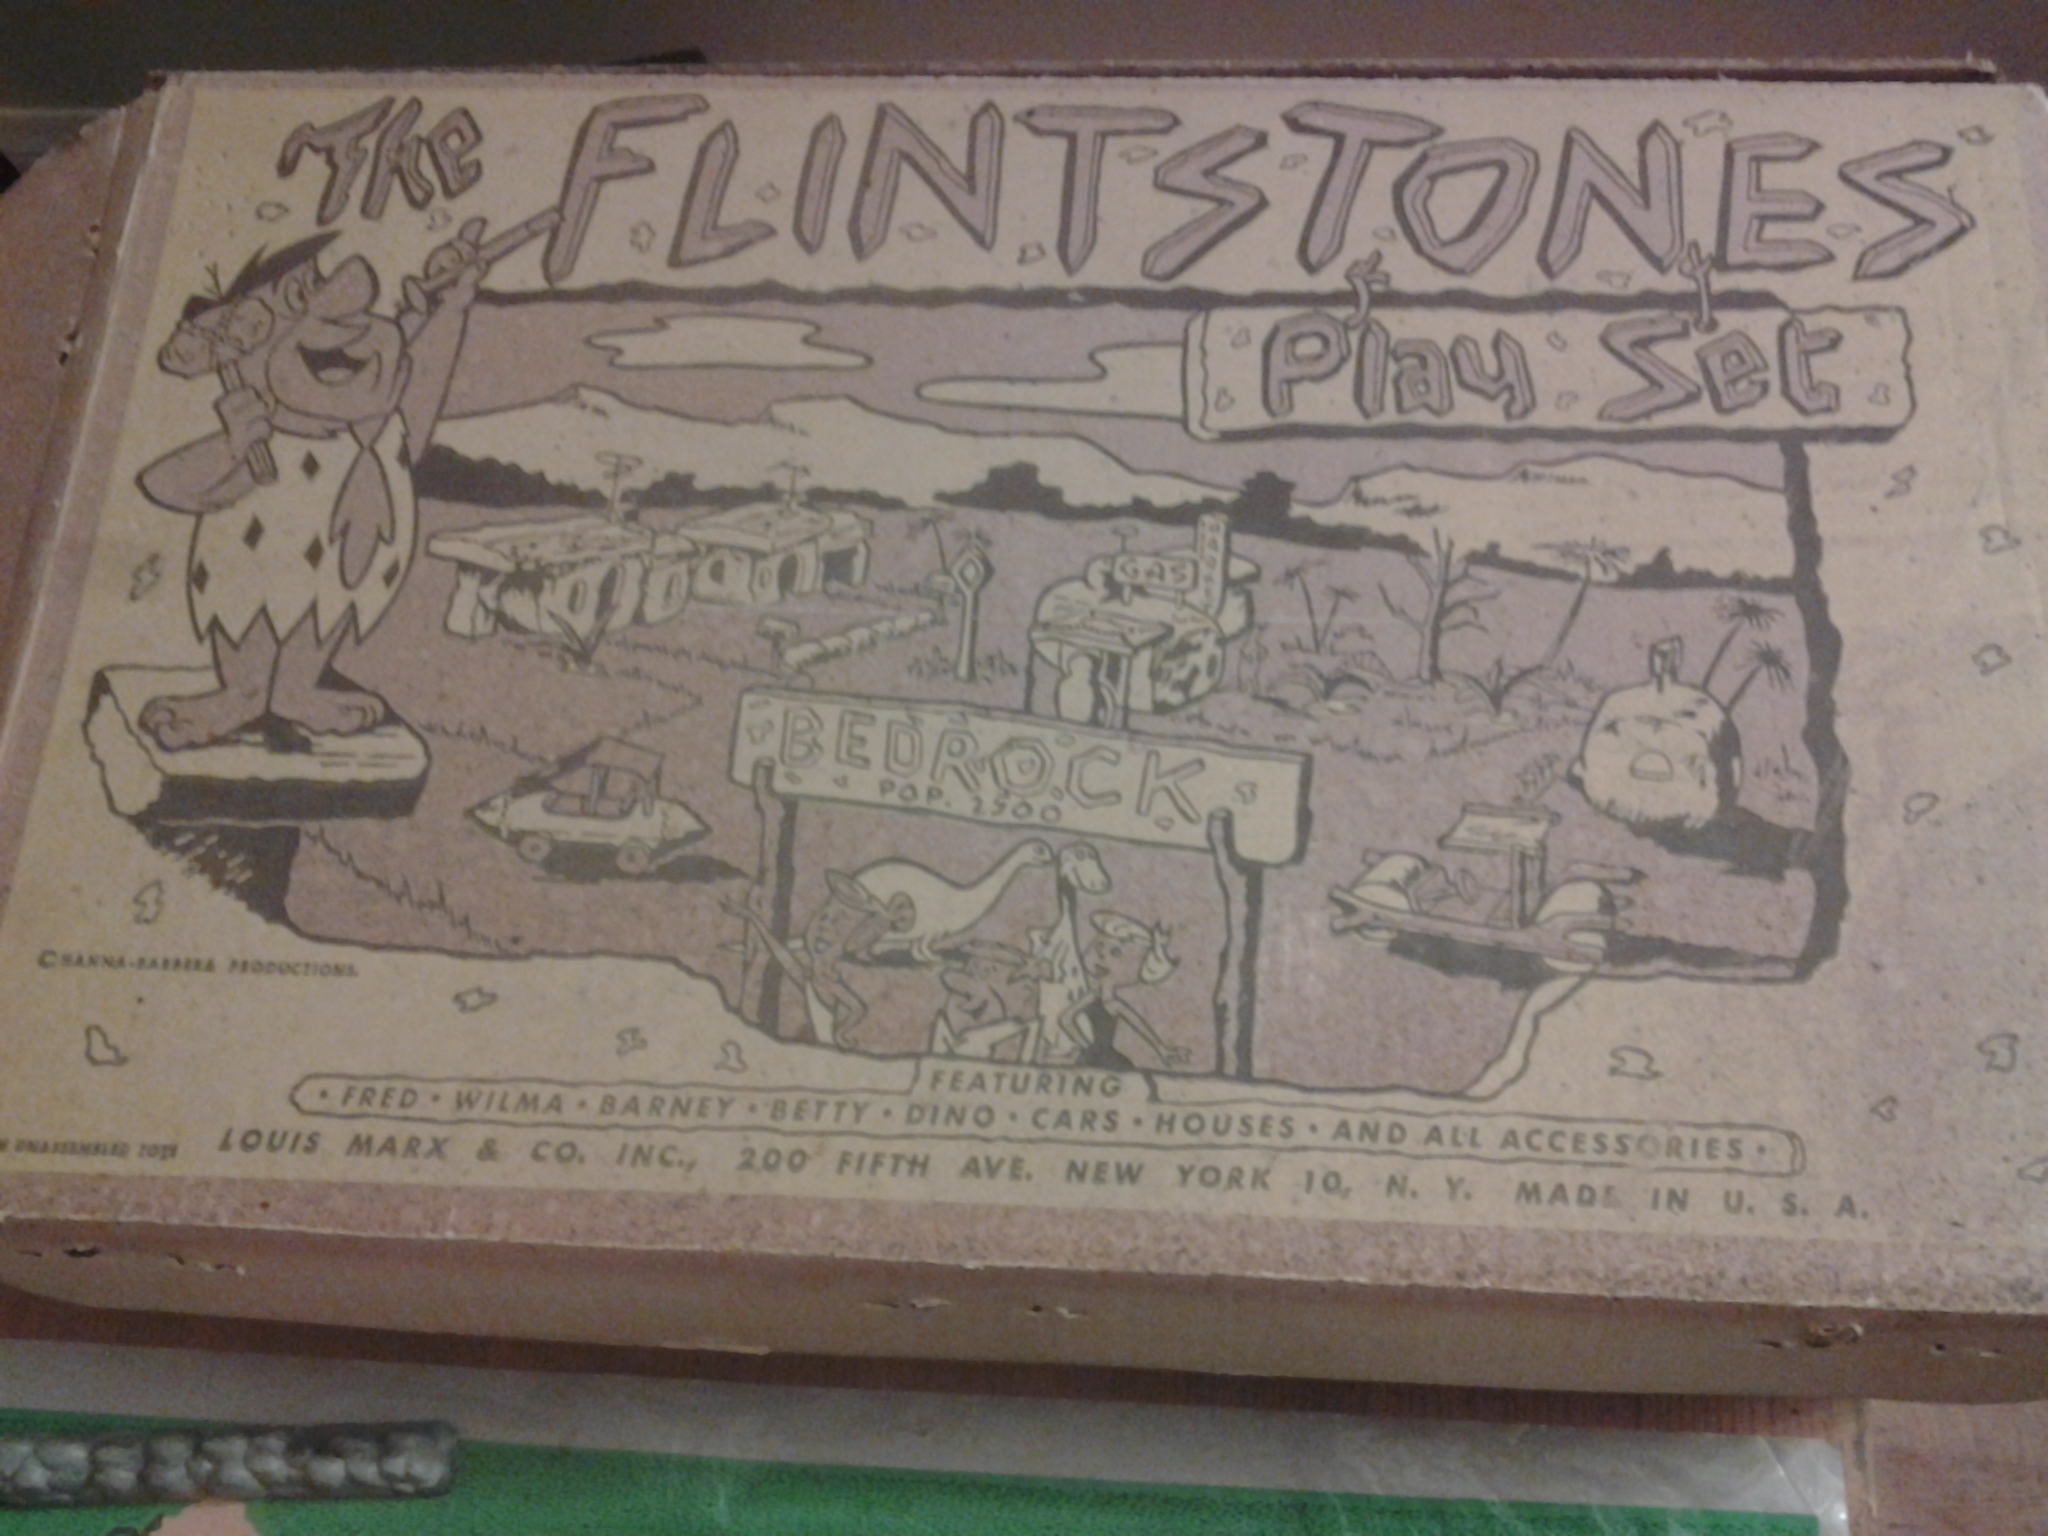 Image for the flintstones playset by marx 1965